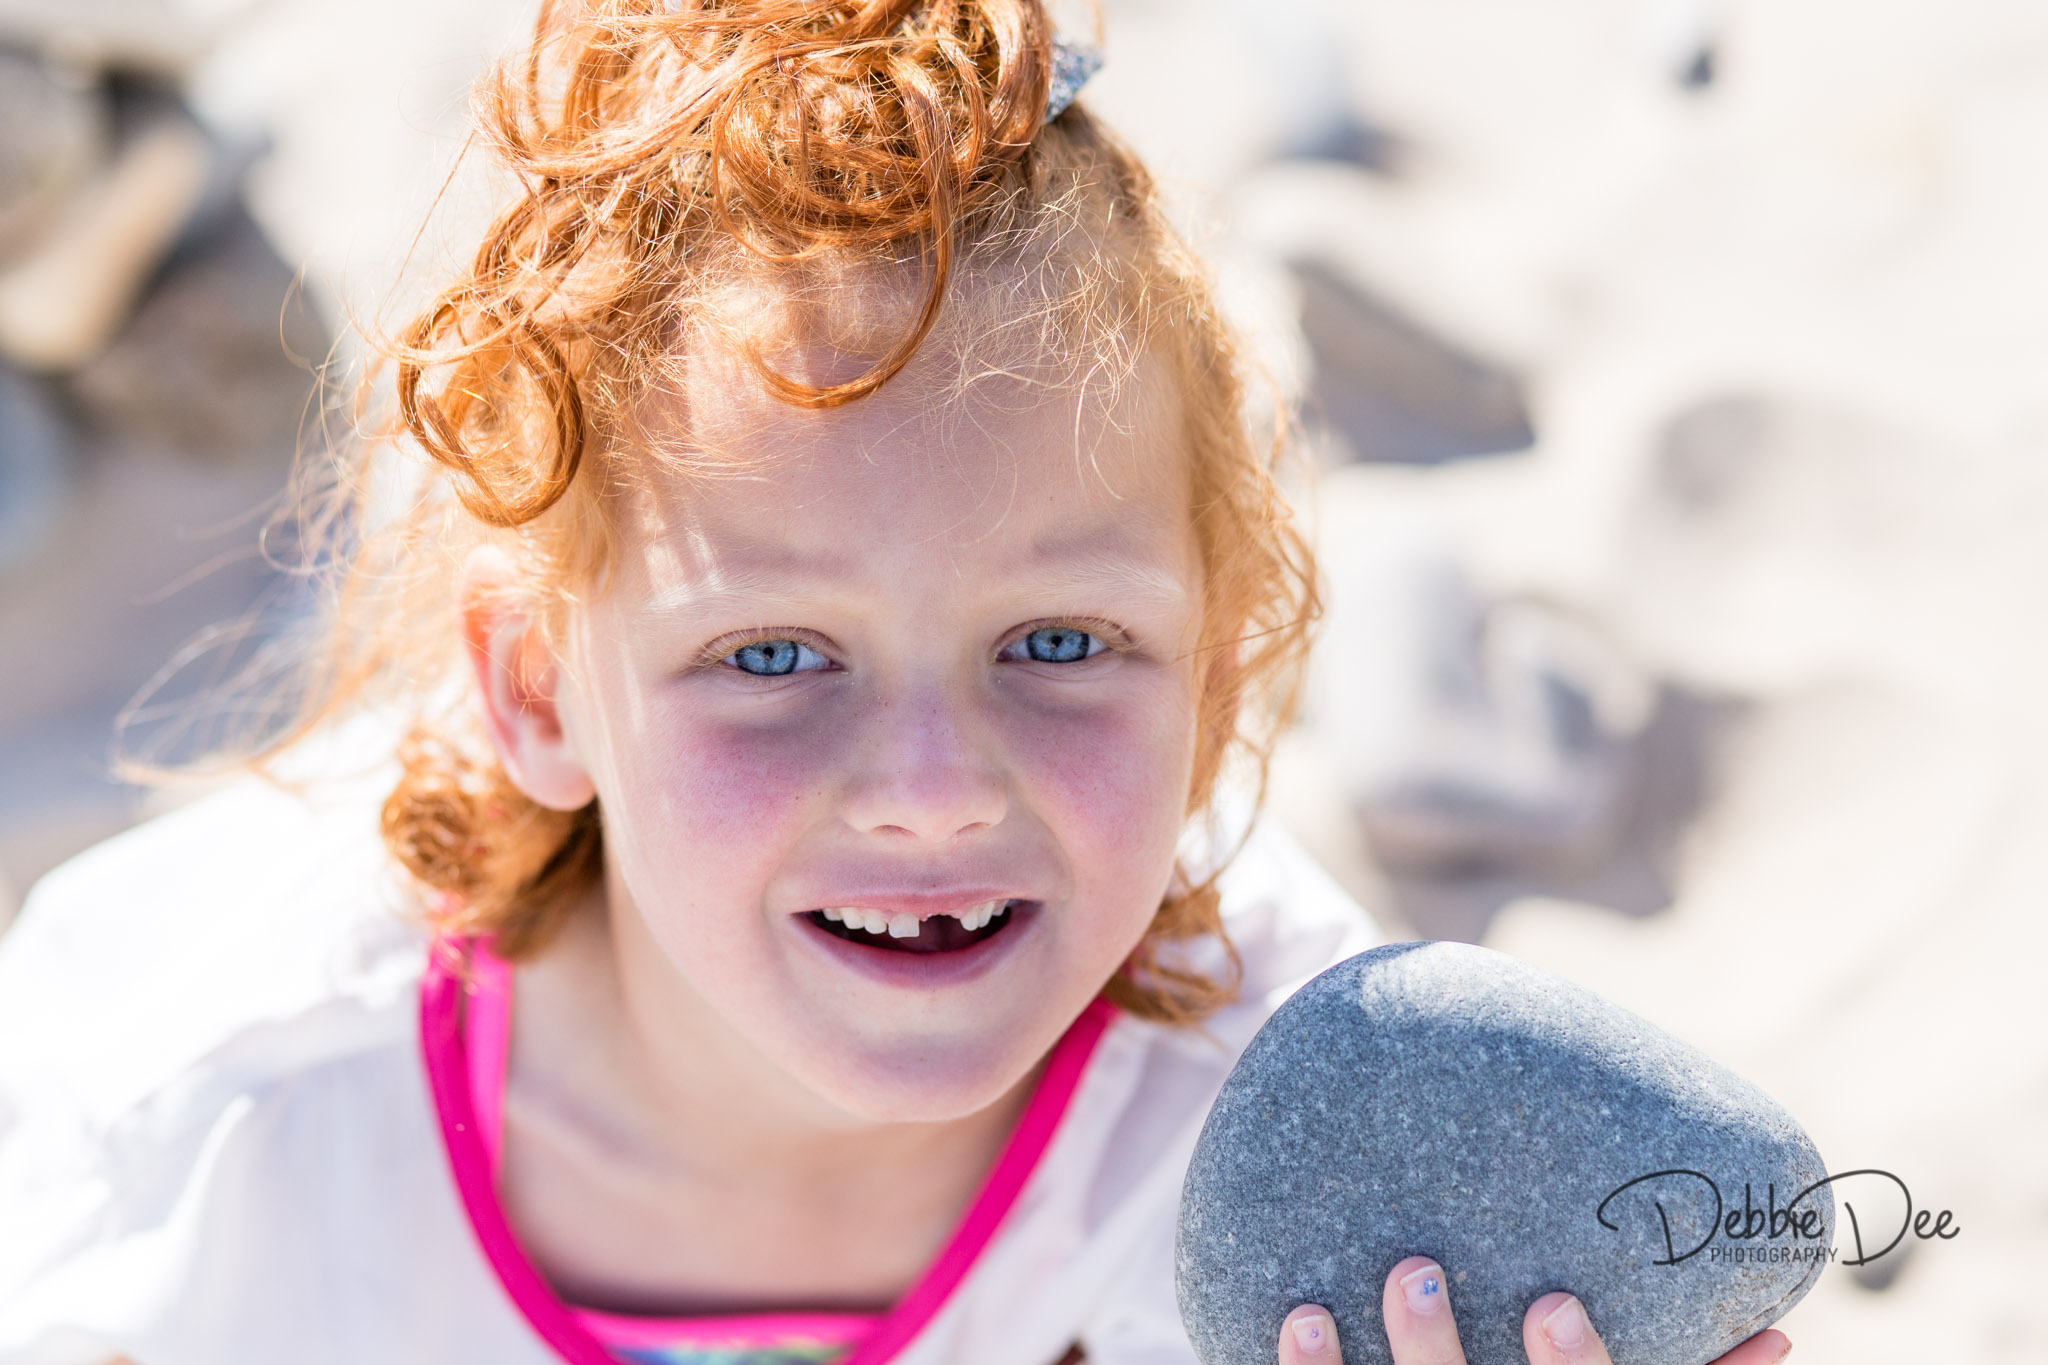 Family photography session banff beach aberdeenshire Debbie Dee Photography girl smiling holding rock